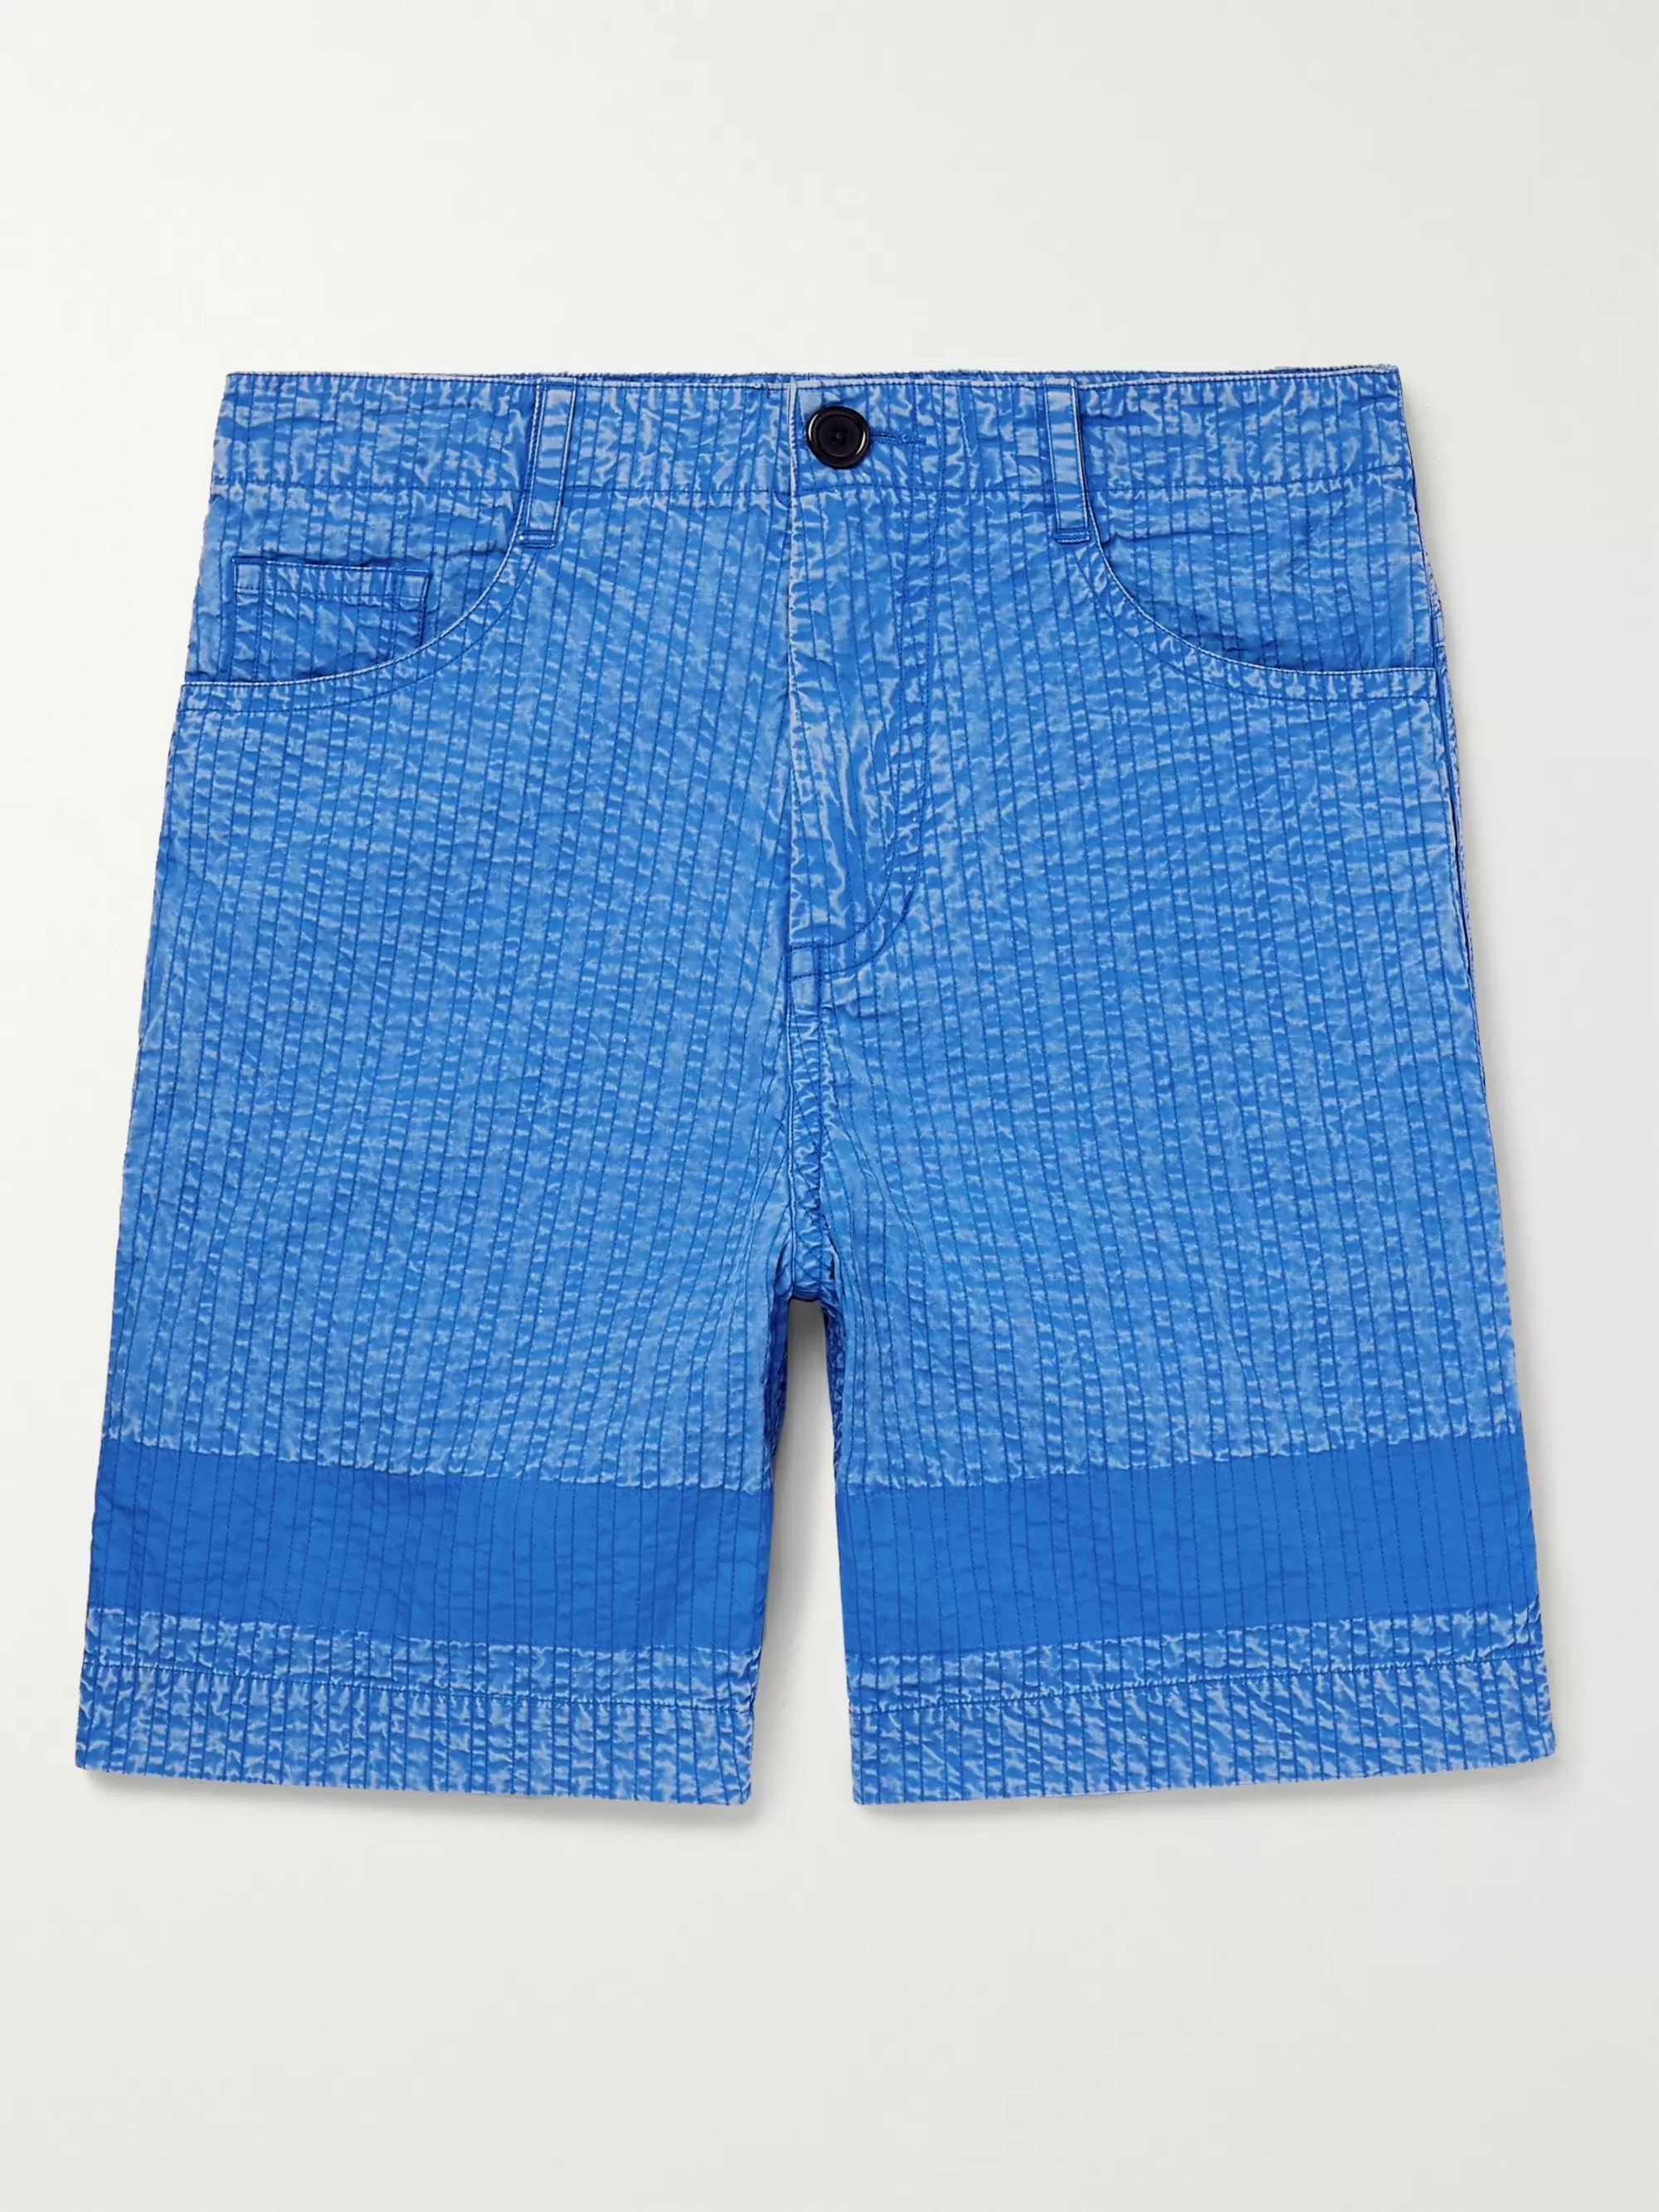 Craig Green Acid-Washed Cotton Shorts